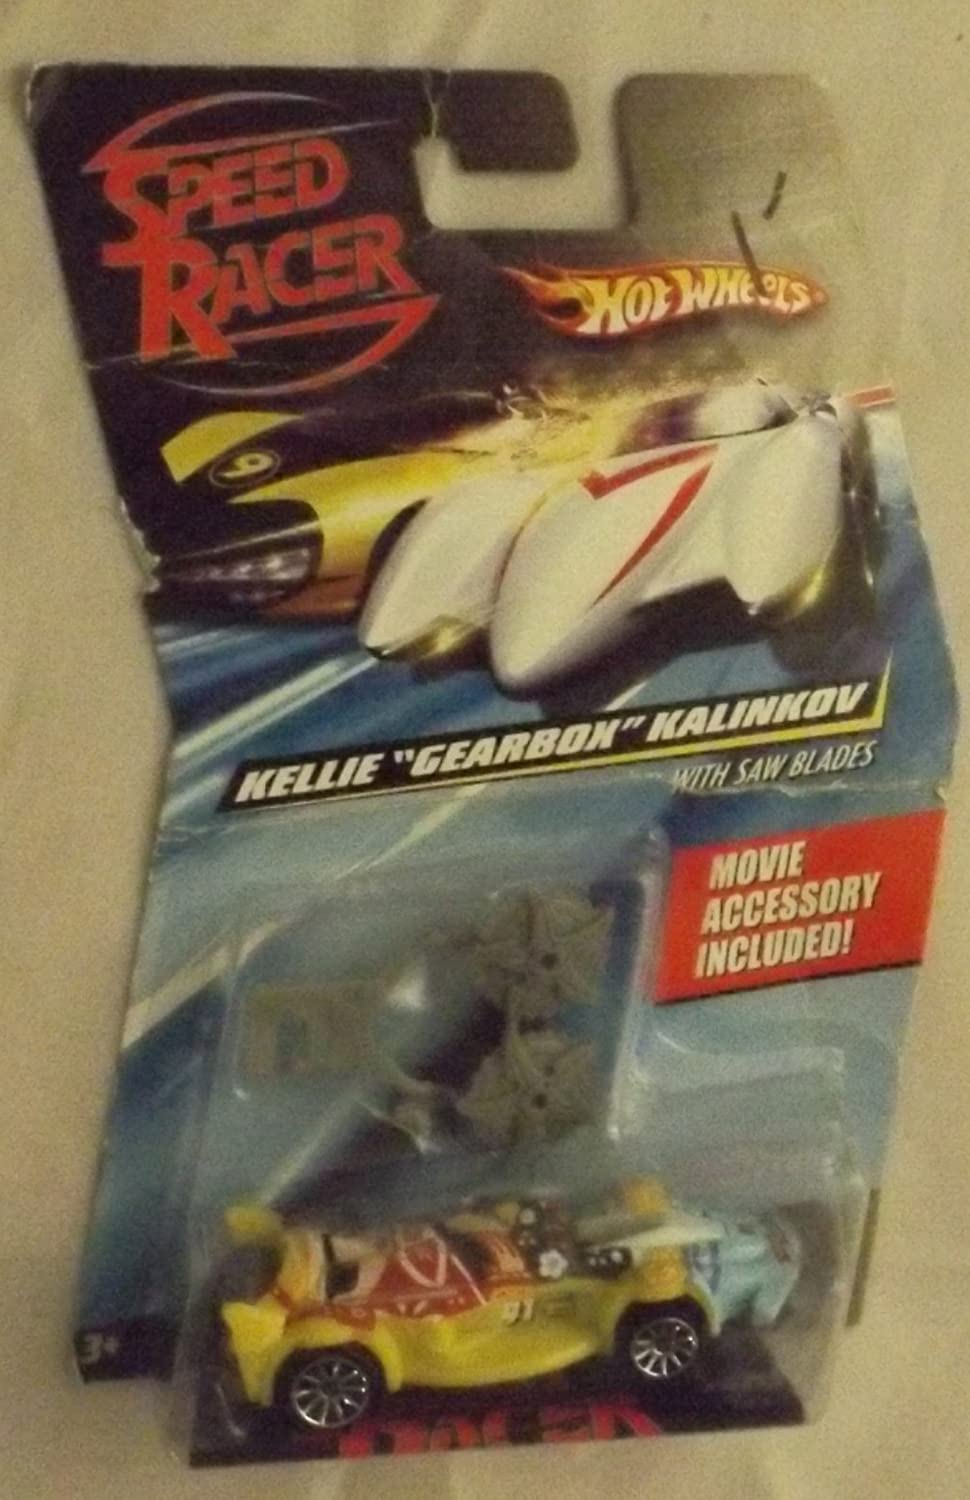 Speed Racer 1:64 Die Cast Hot Wheels Car Kellie Gearbox by Kalinkov by Gearbox Hot Wheels 4bed87